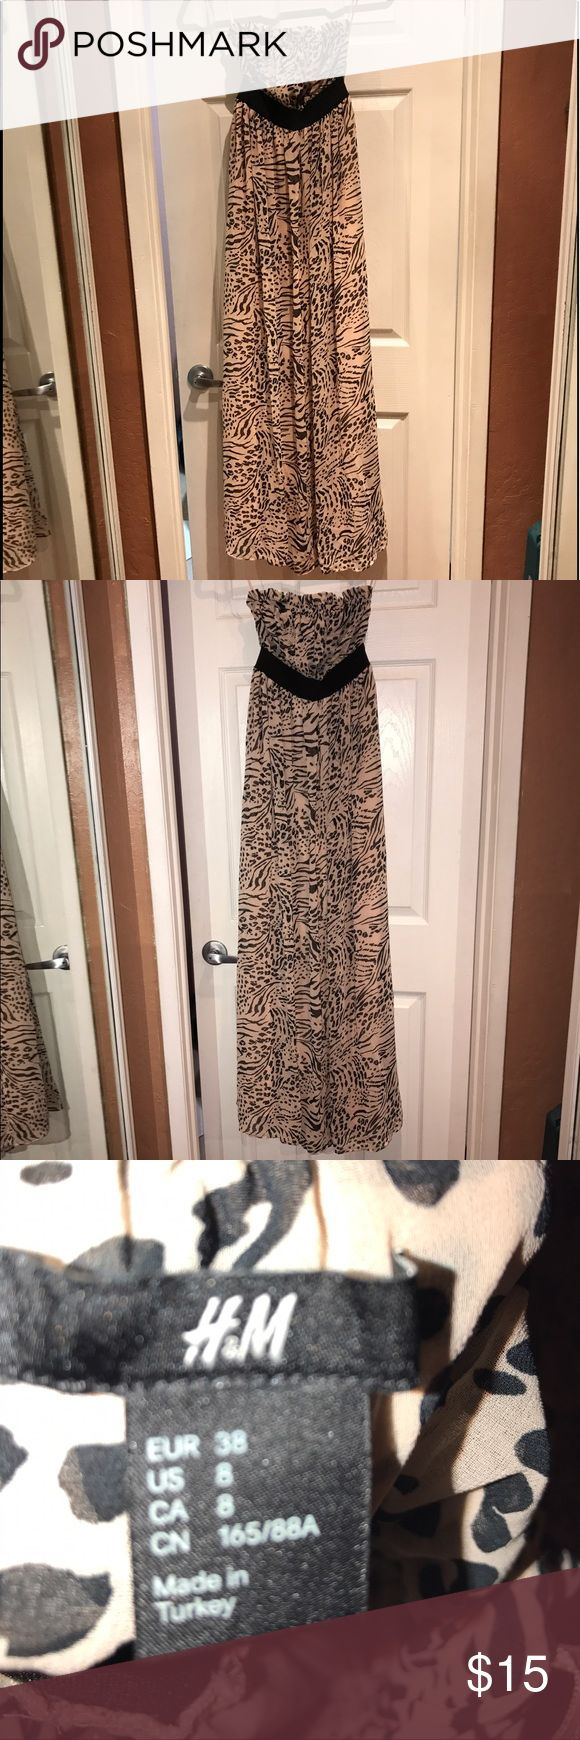 Size 8 long dress Creme color with black size 8 H&M animal print, long dress.  I am 5'7 and it's down to my ankle H&M Dresses Maxi